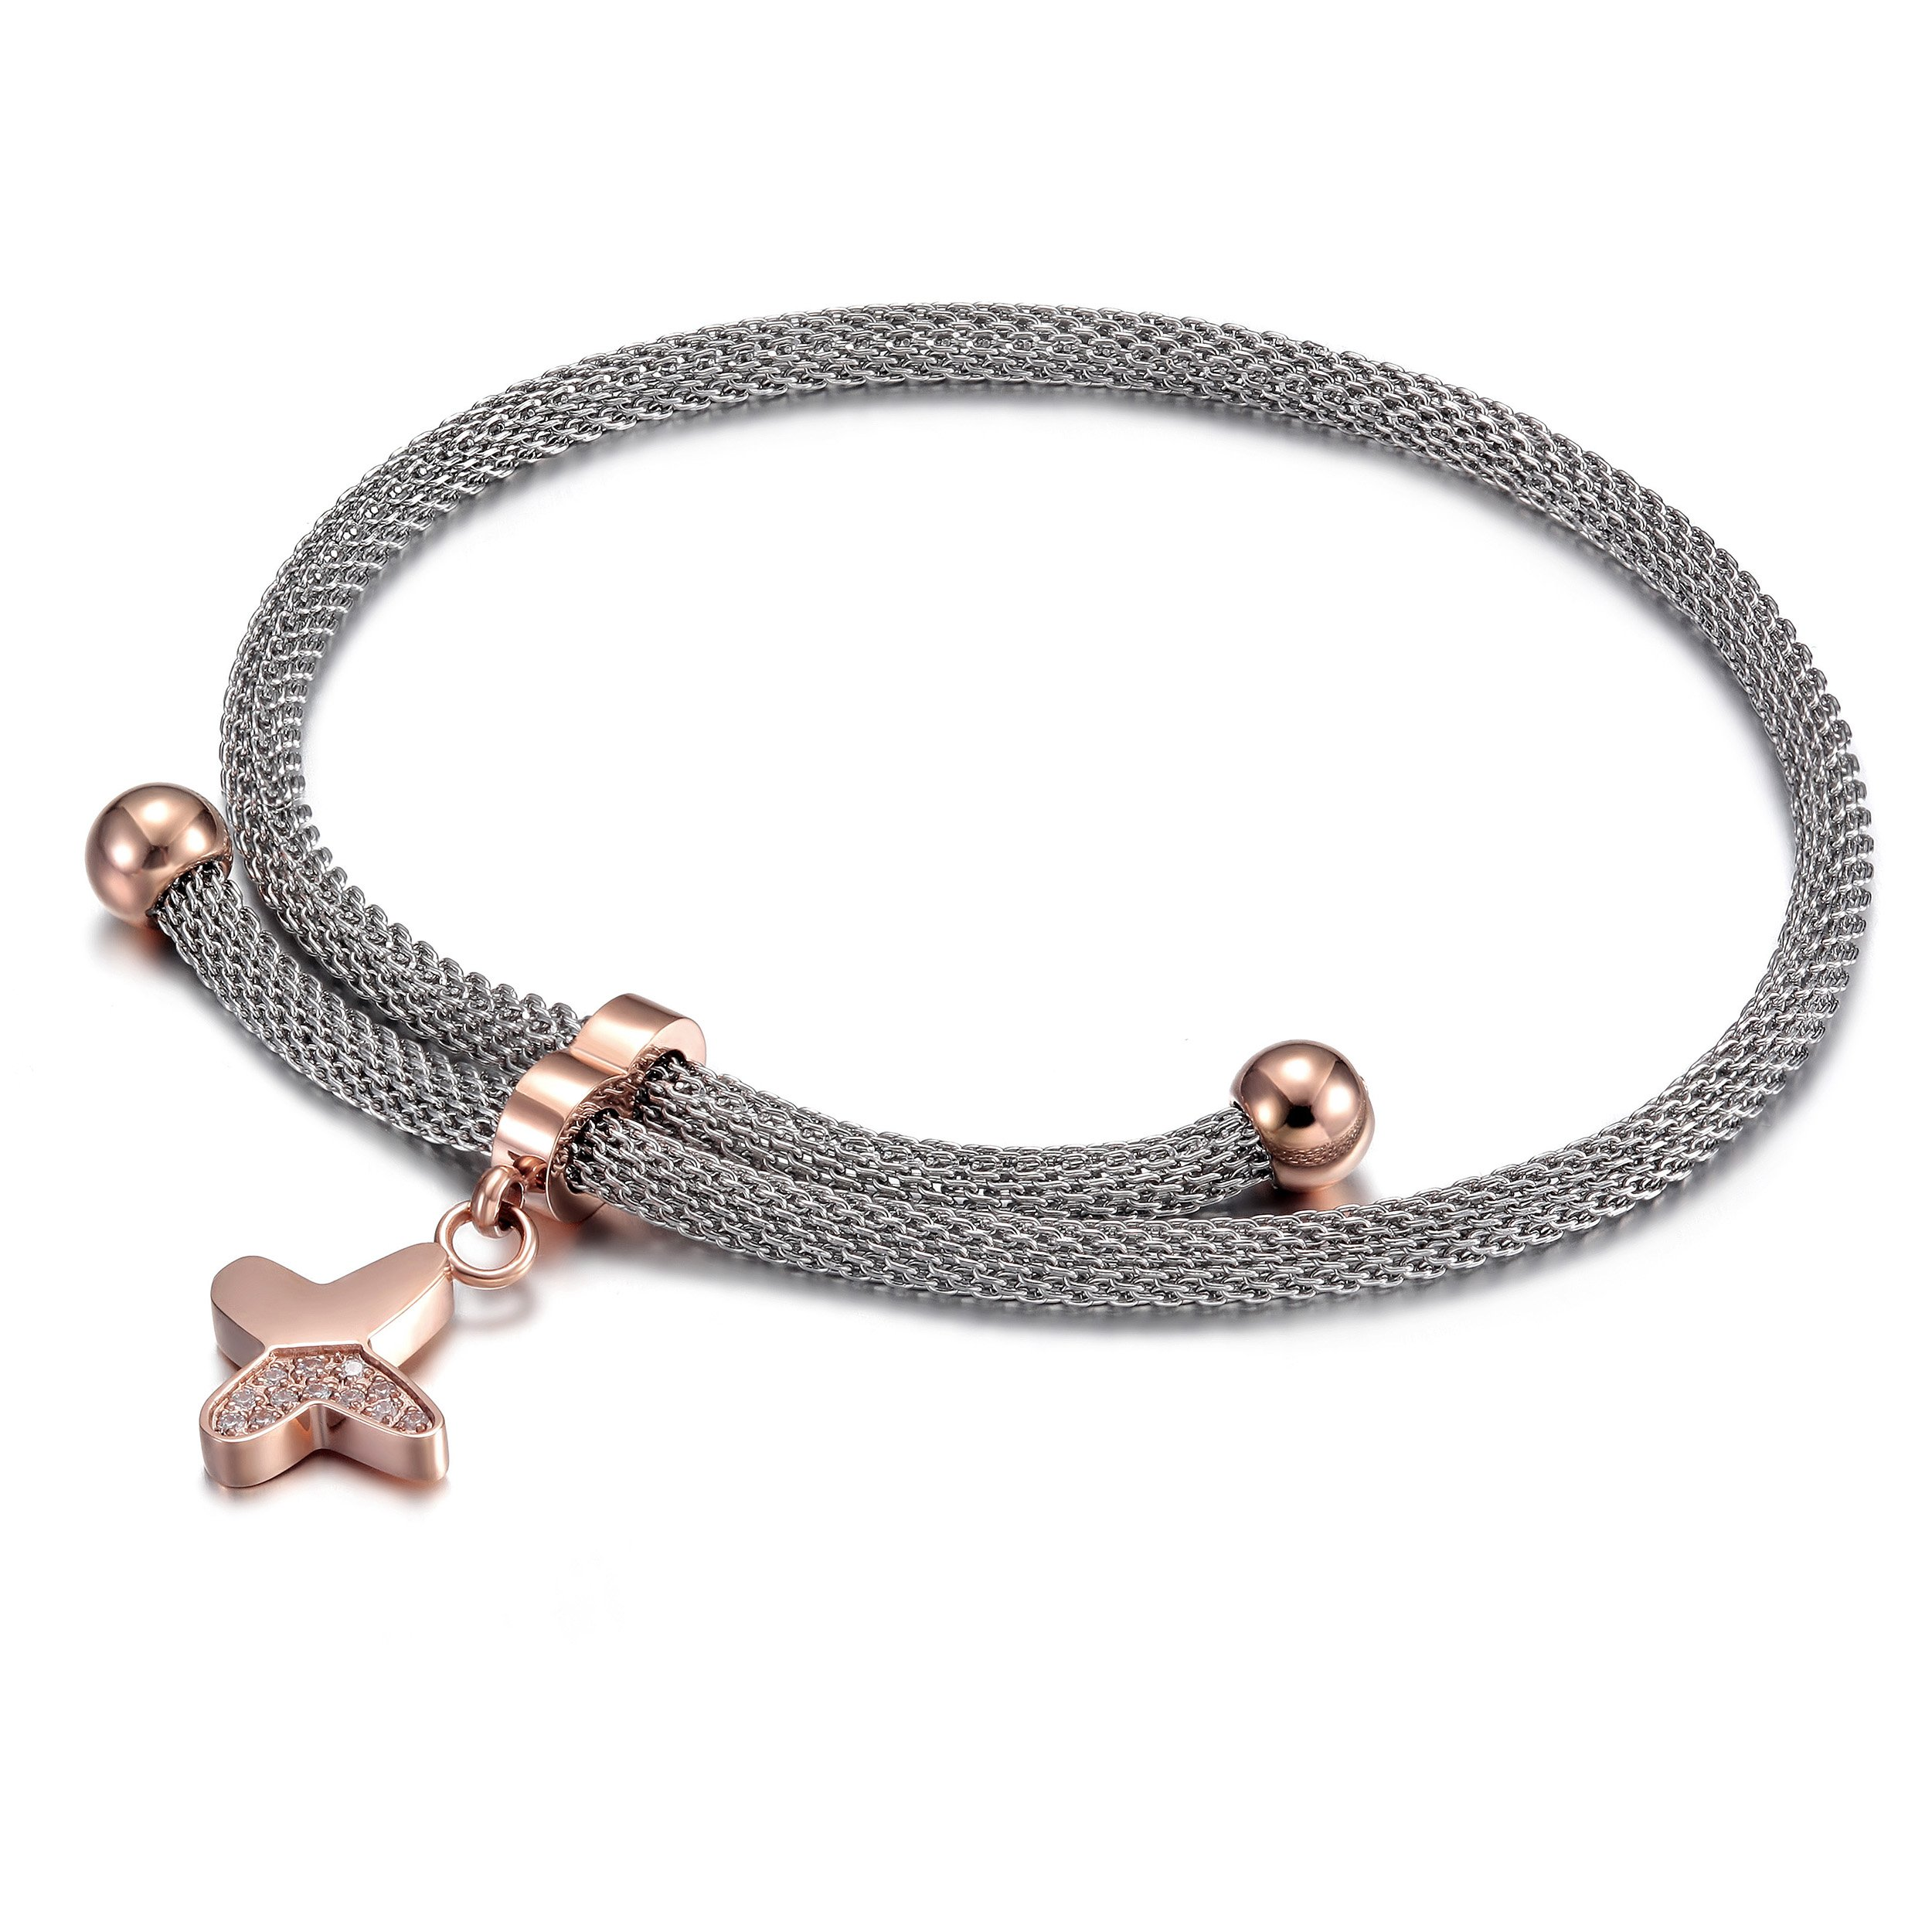 CIUNOFOR Charm Bracelet for Women Girls Chain Link CZ Bracelet with Adjustable 10.24 Inches(Butterfly)